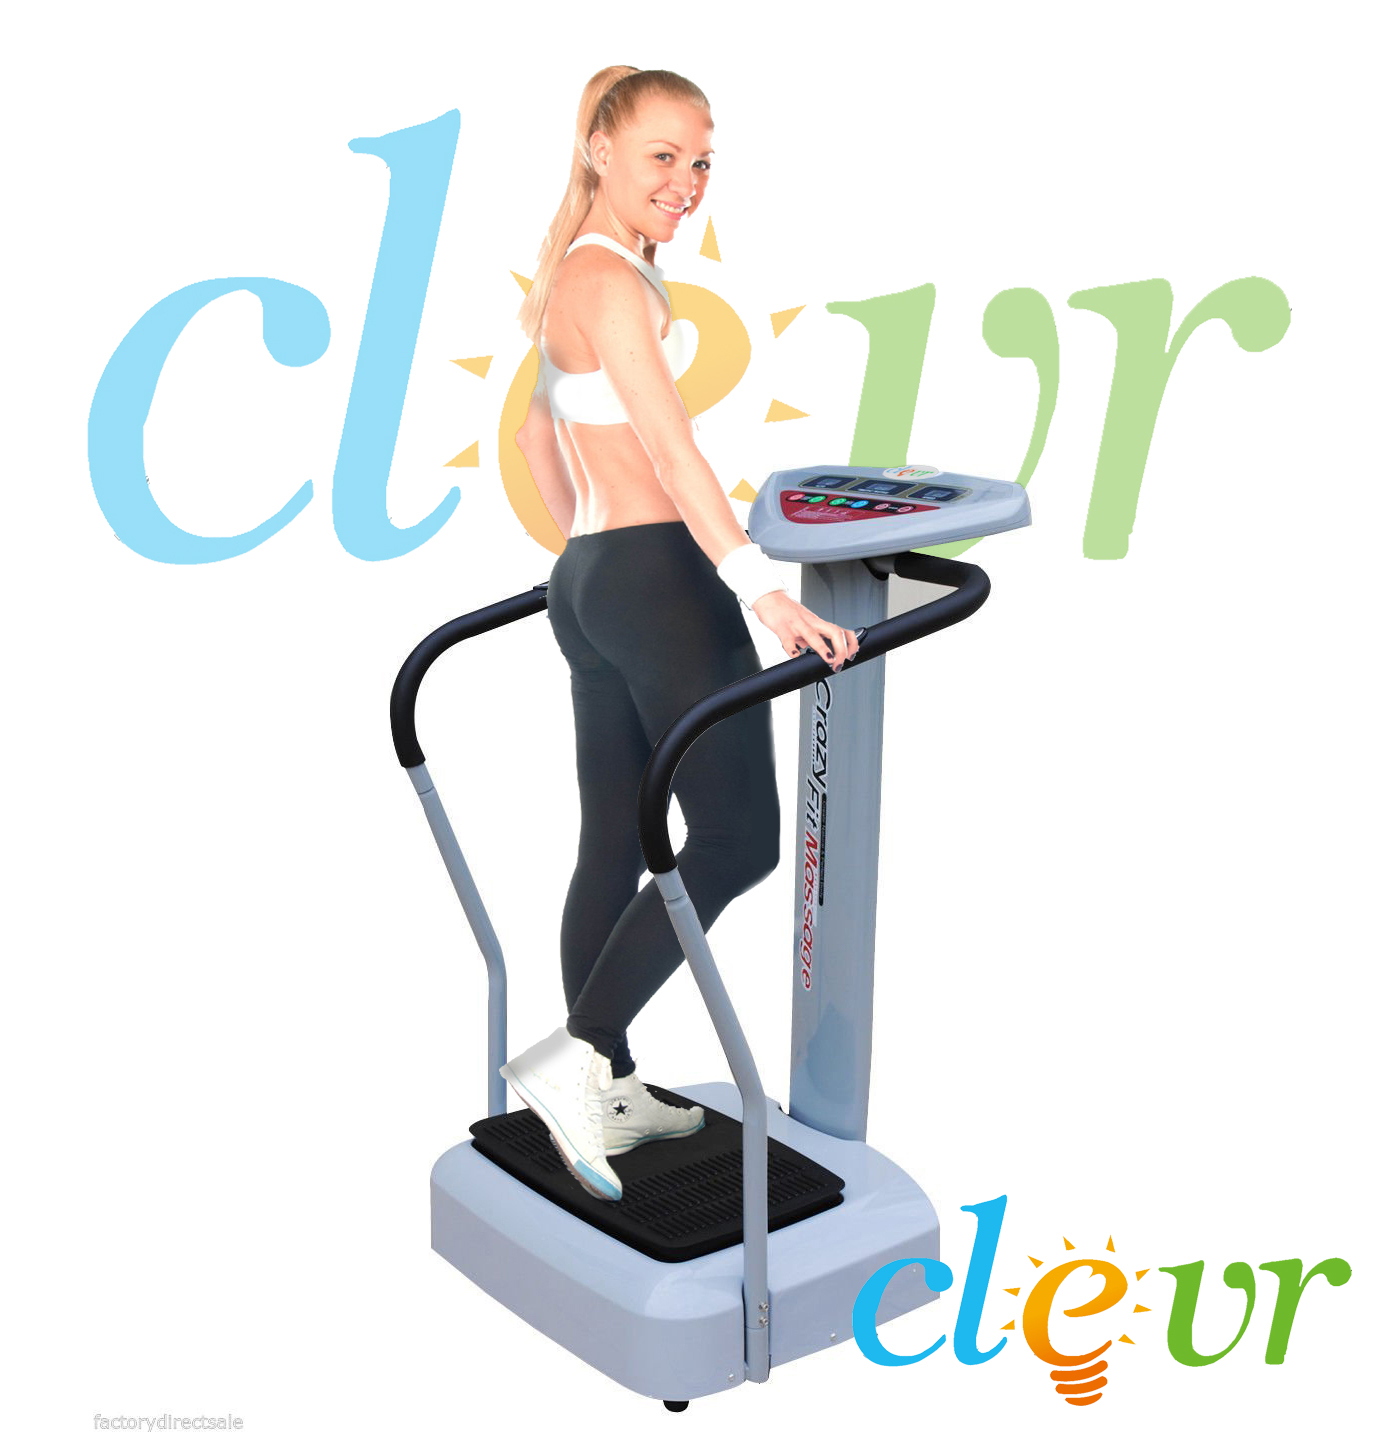 Clevr? 1000w Pro Crazy Fit Full Body Vibration Massage Machine Platform Massage Fitness at Sears.com